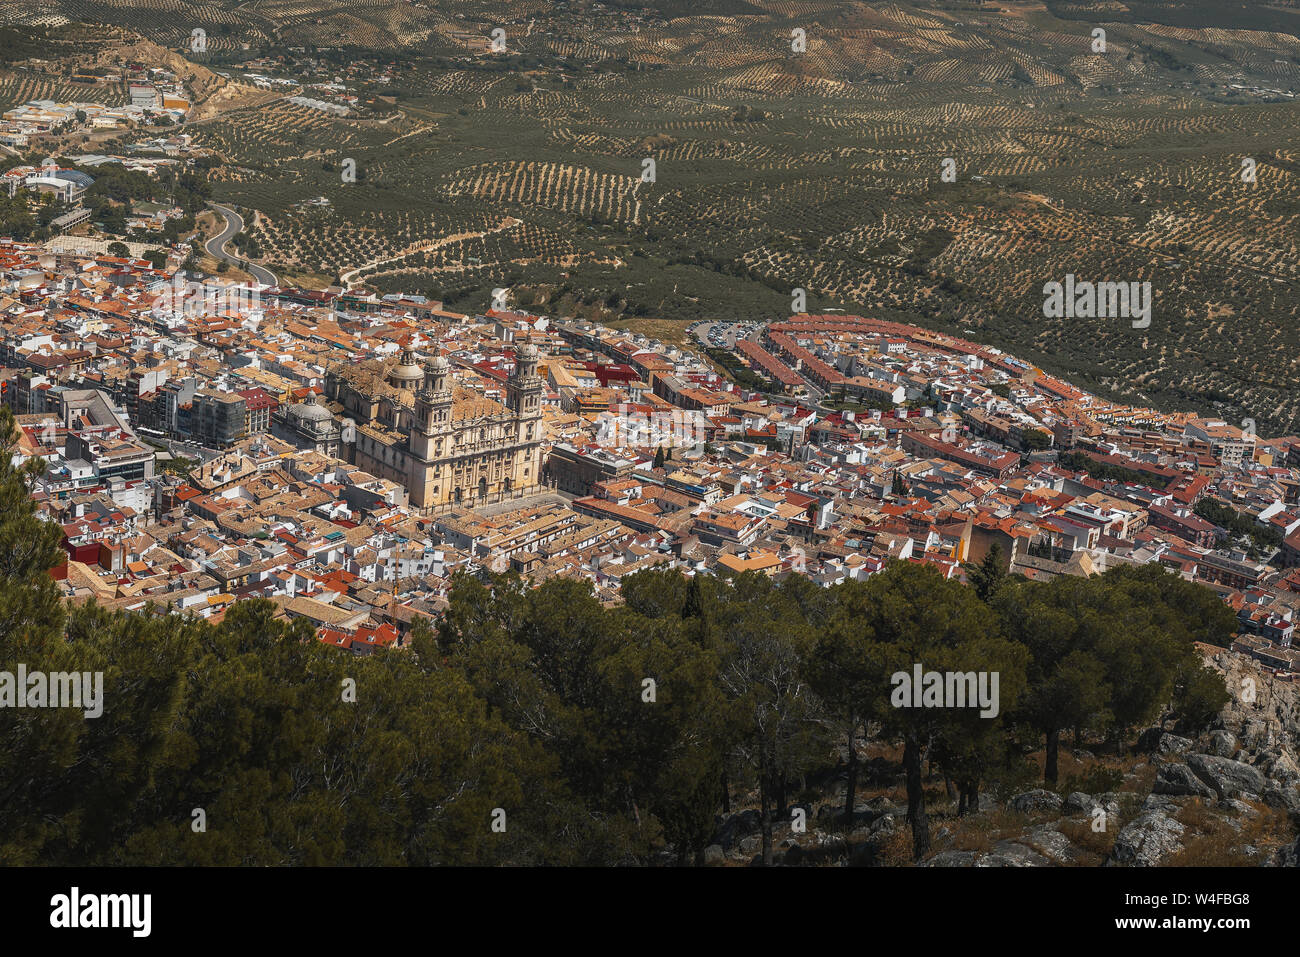 Aerial view of Jaen city with Cathedral and olive trees - Jaen, Andalusia, Spain Stock Photo